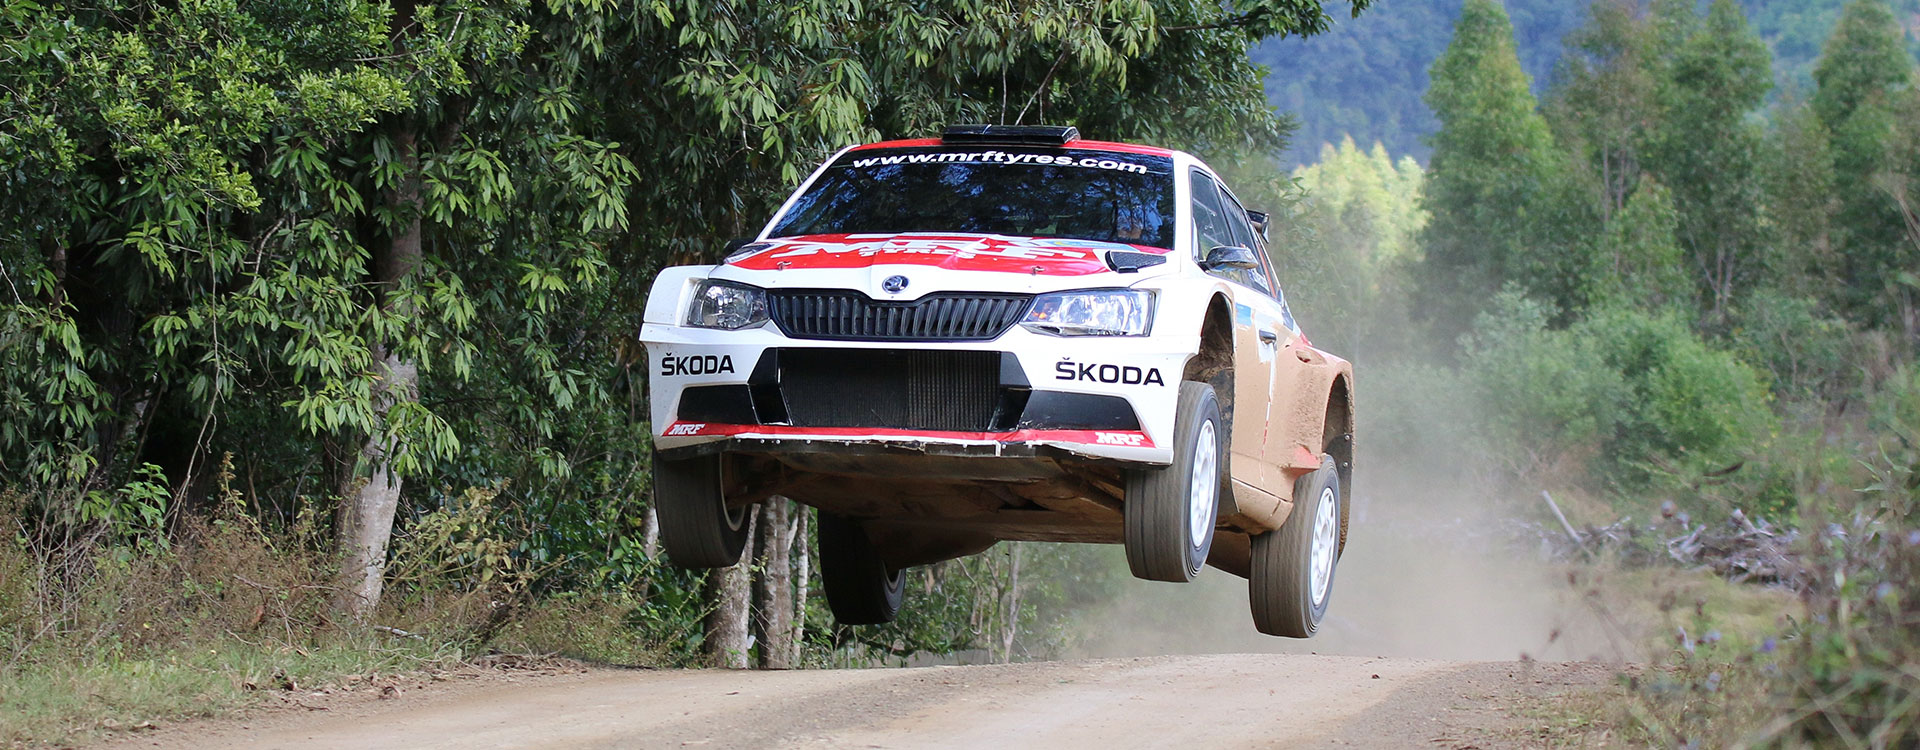 APRC: ŠKODA aims to extend championship lead in Japan